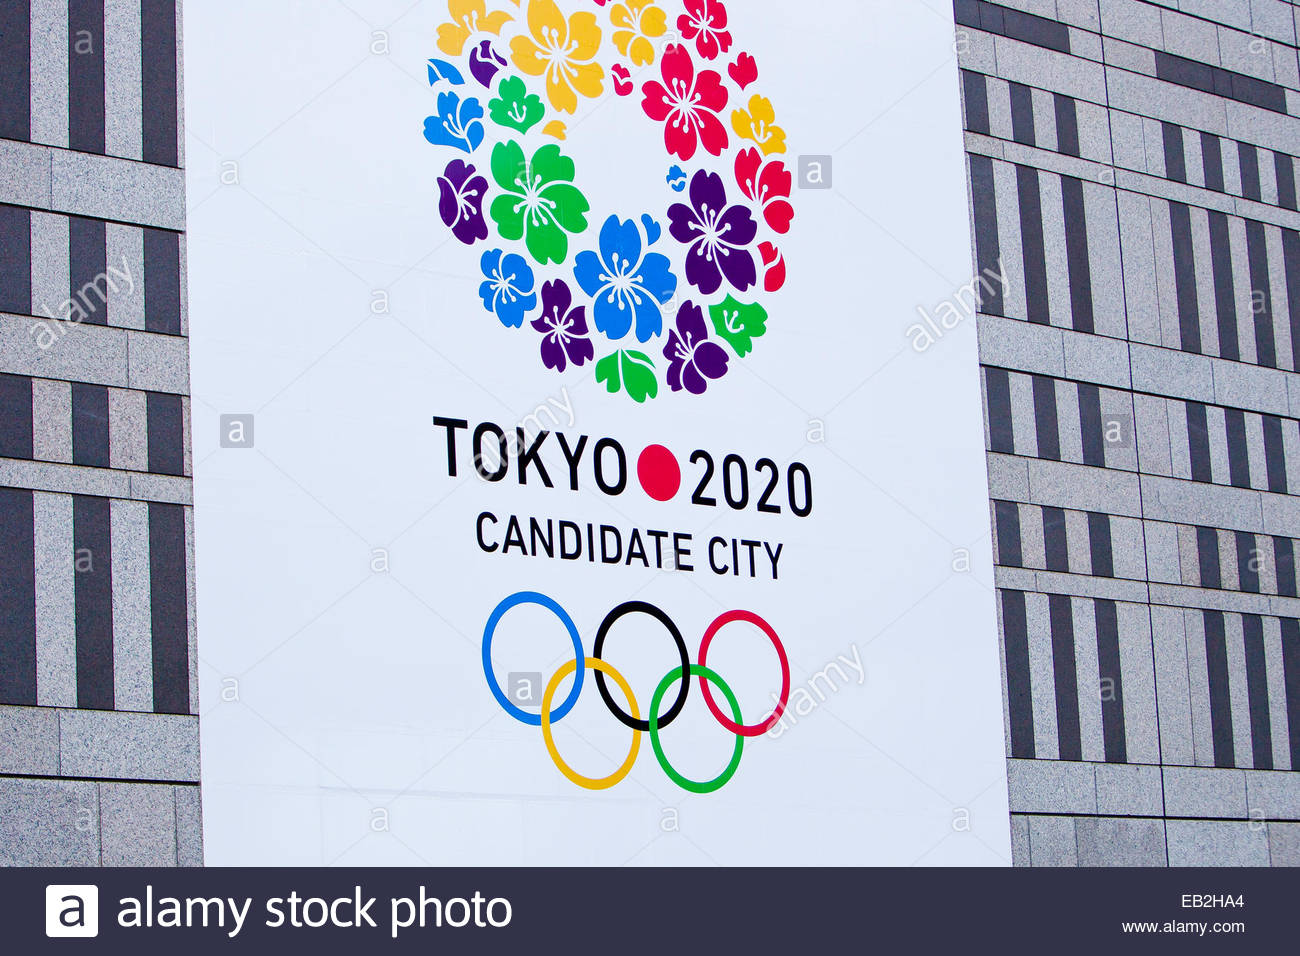 A sign proudly advertising that Tokyo is a candidate city for the 2020 summer Olympics. - Stock Image